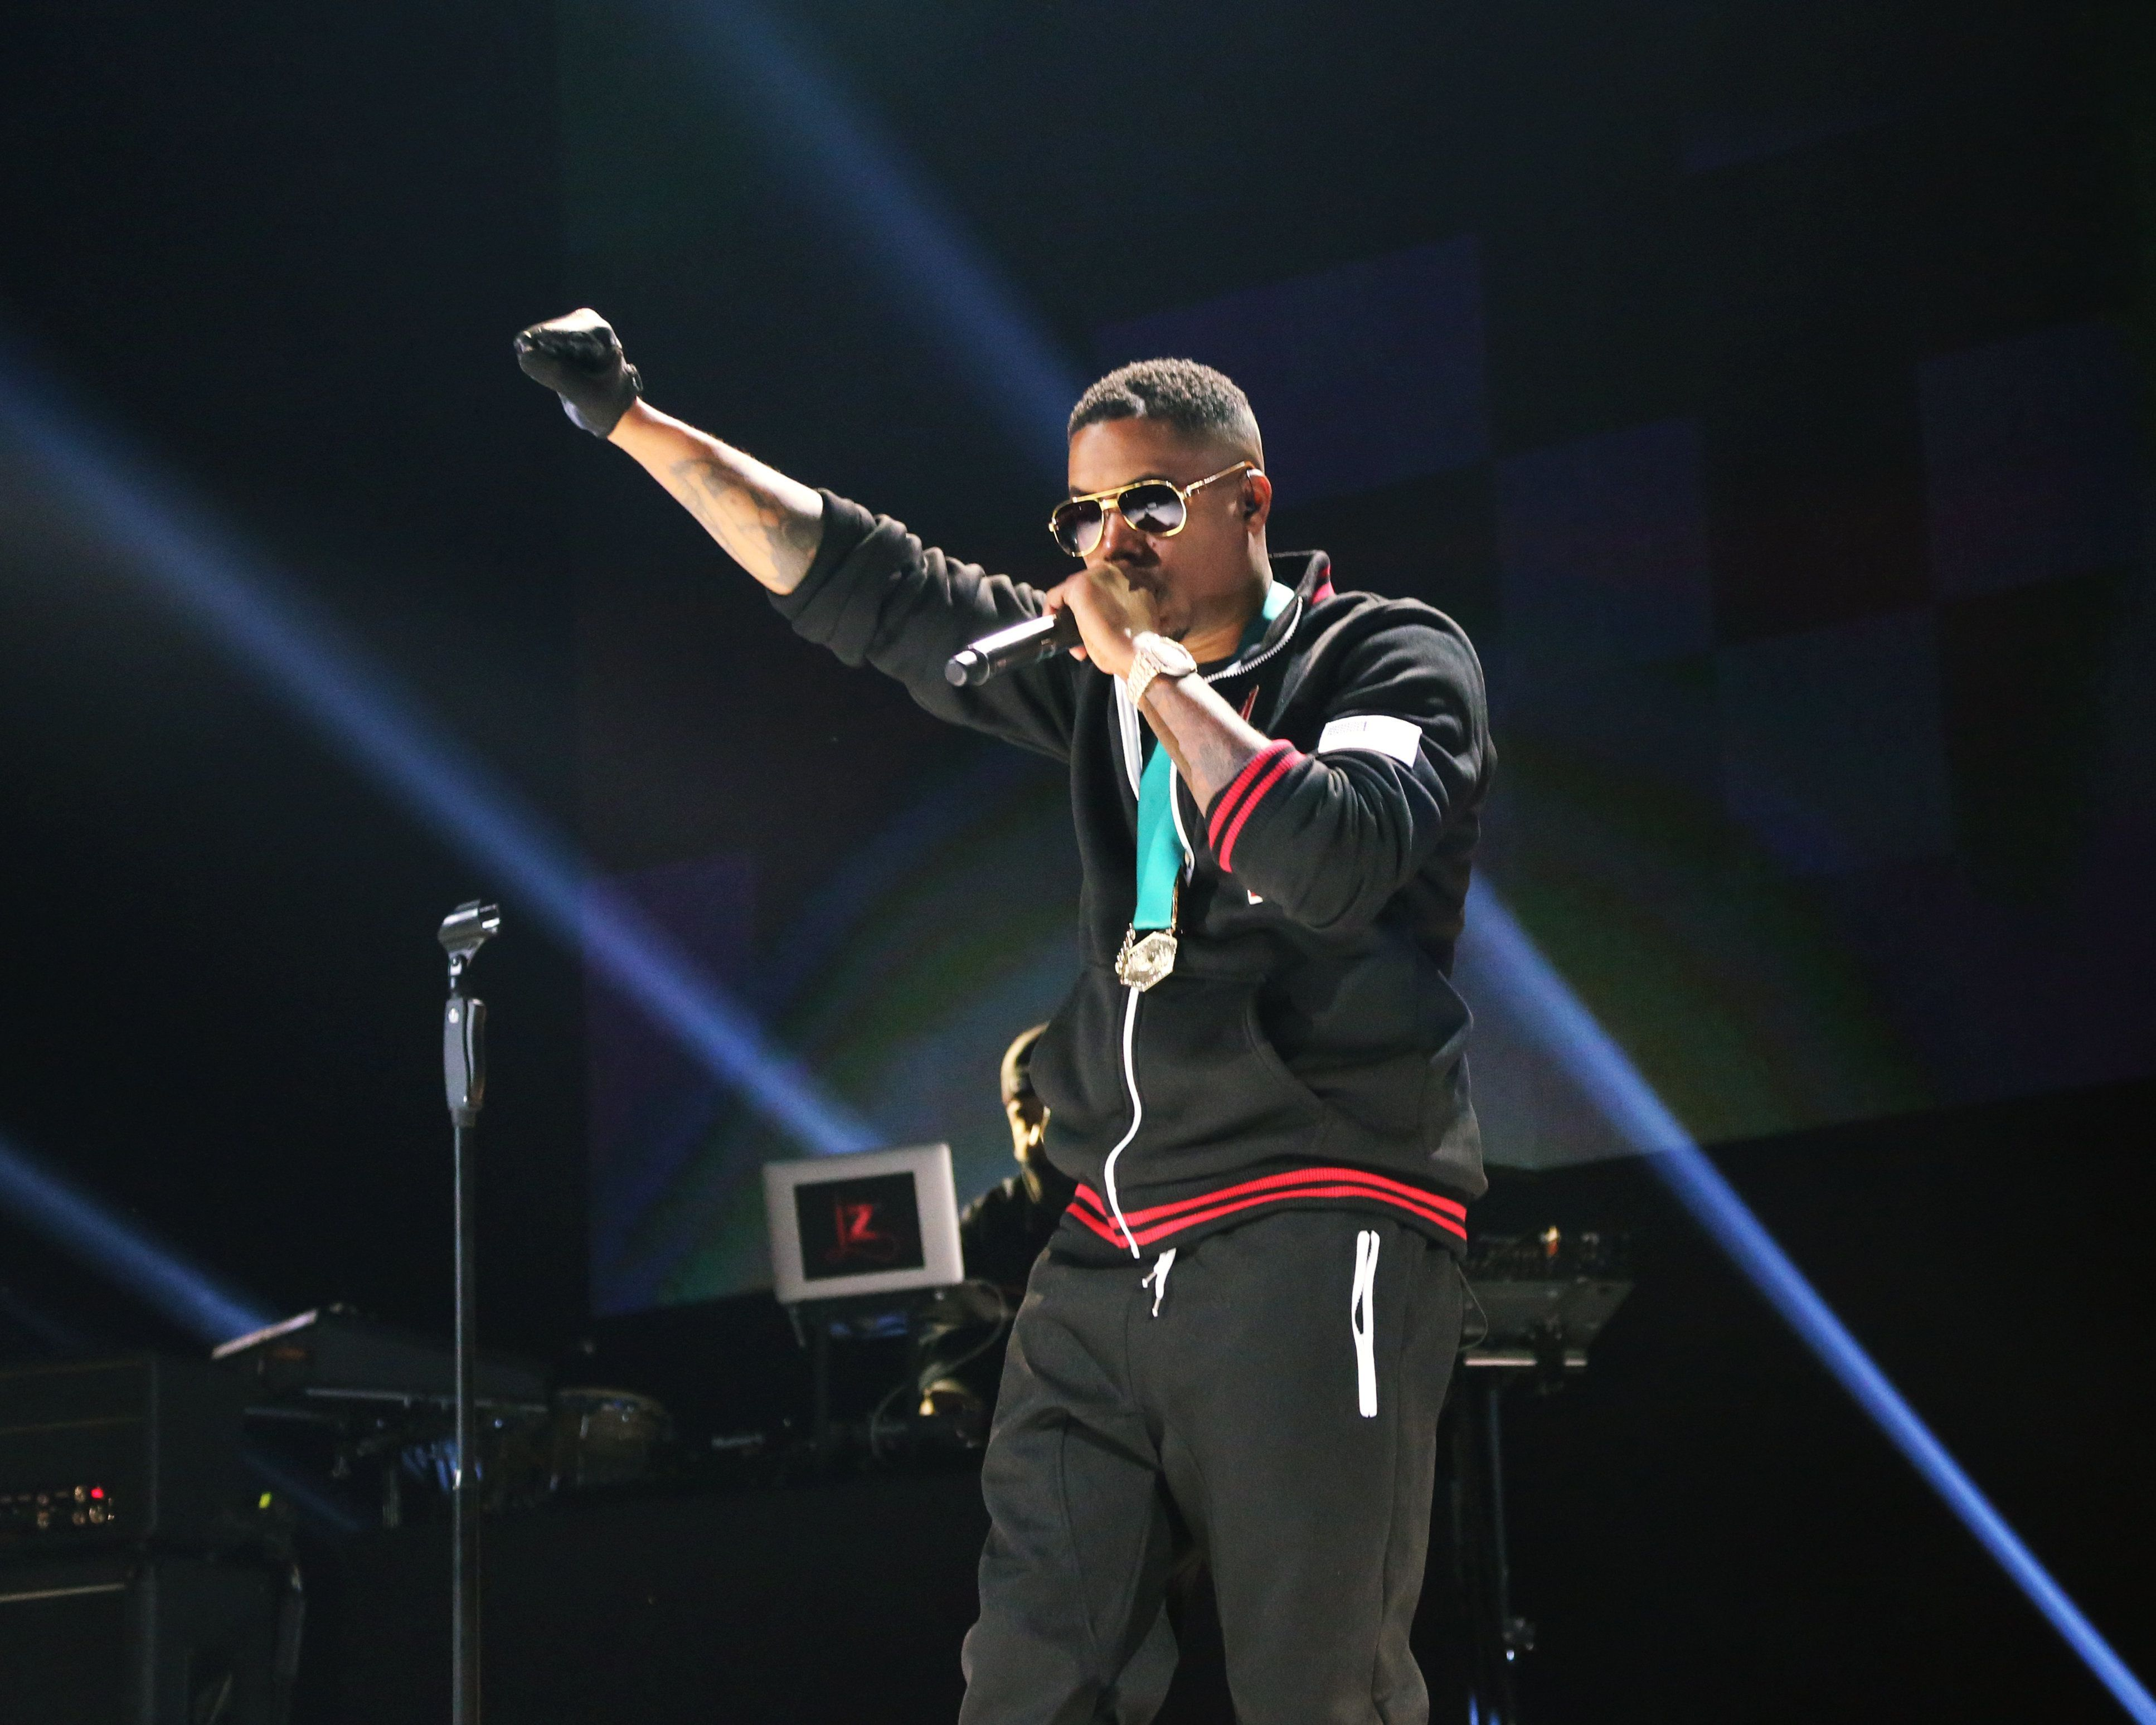 NEW YORK, NY - OCTOBER 20: Nas performs during Tidal X: 1020 at Barclays Center on October 20, 2015 in the Brooklyn borough of New York City.  (Photo by Taylor Hill/FilmMagic)